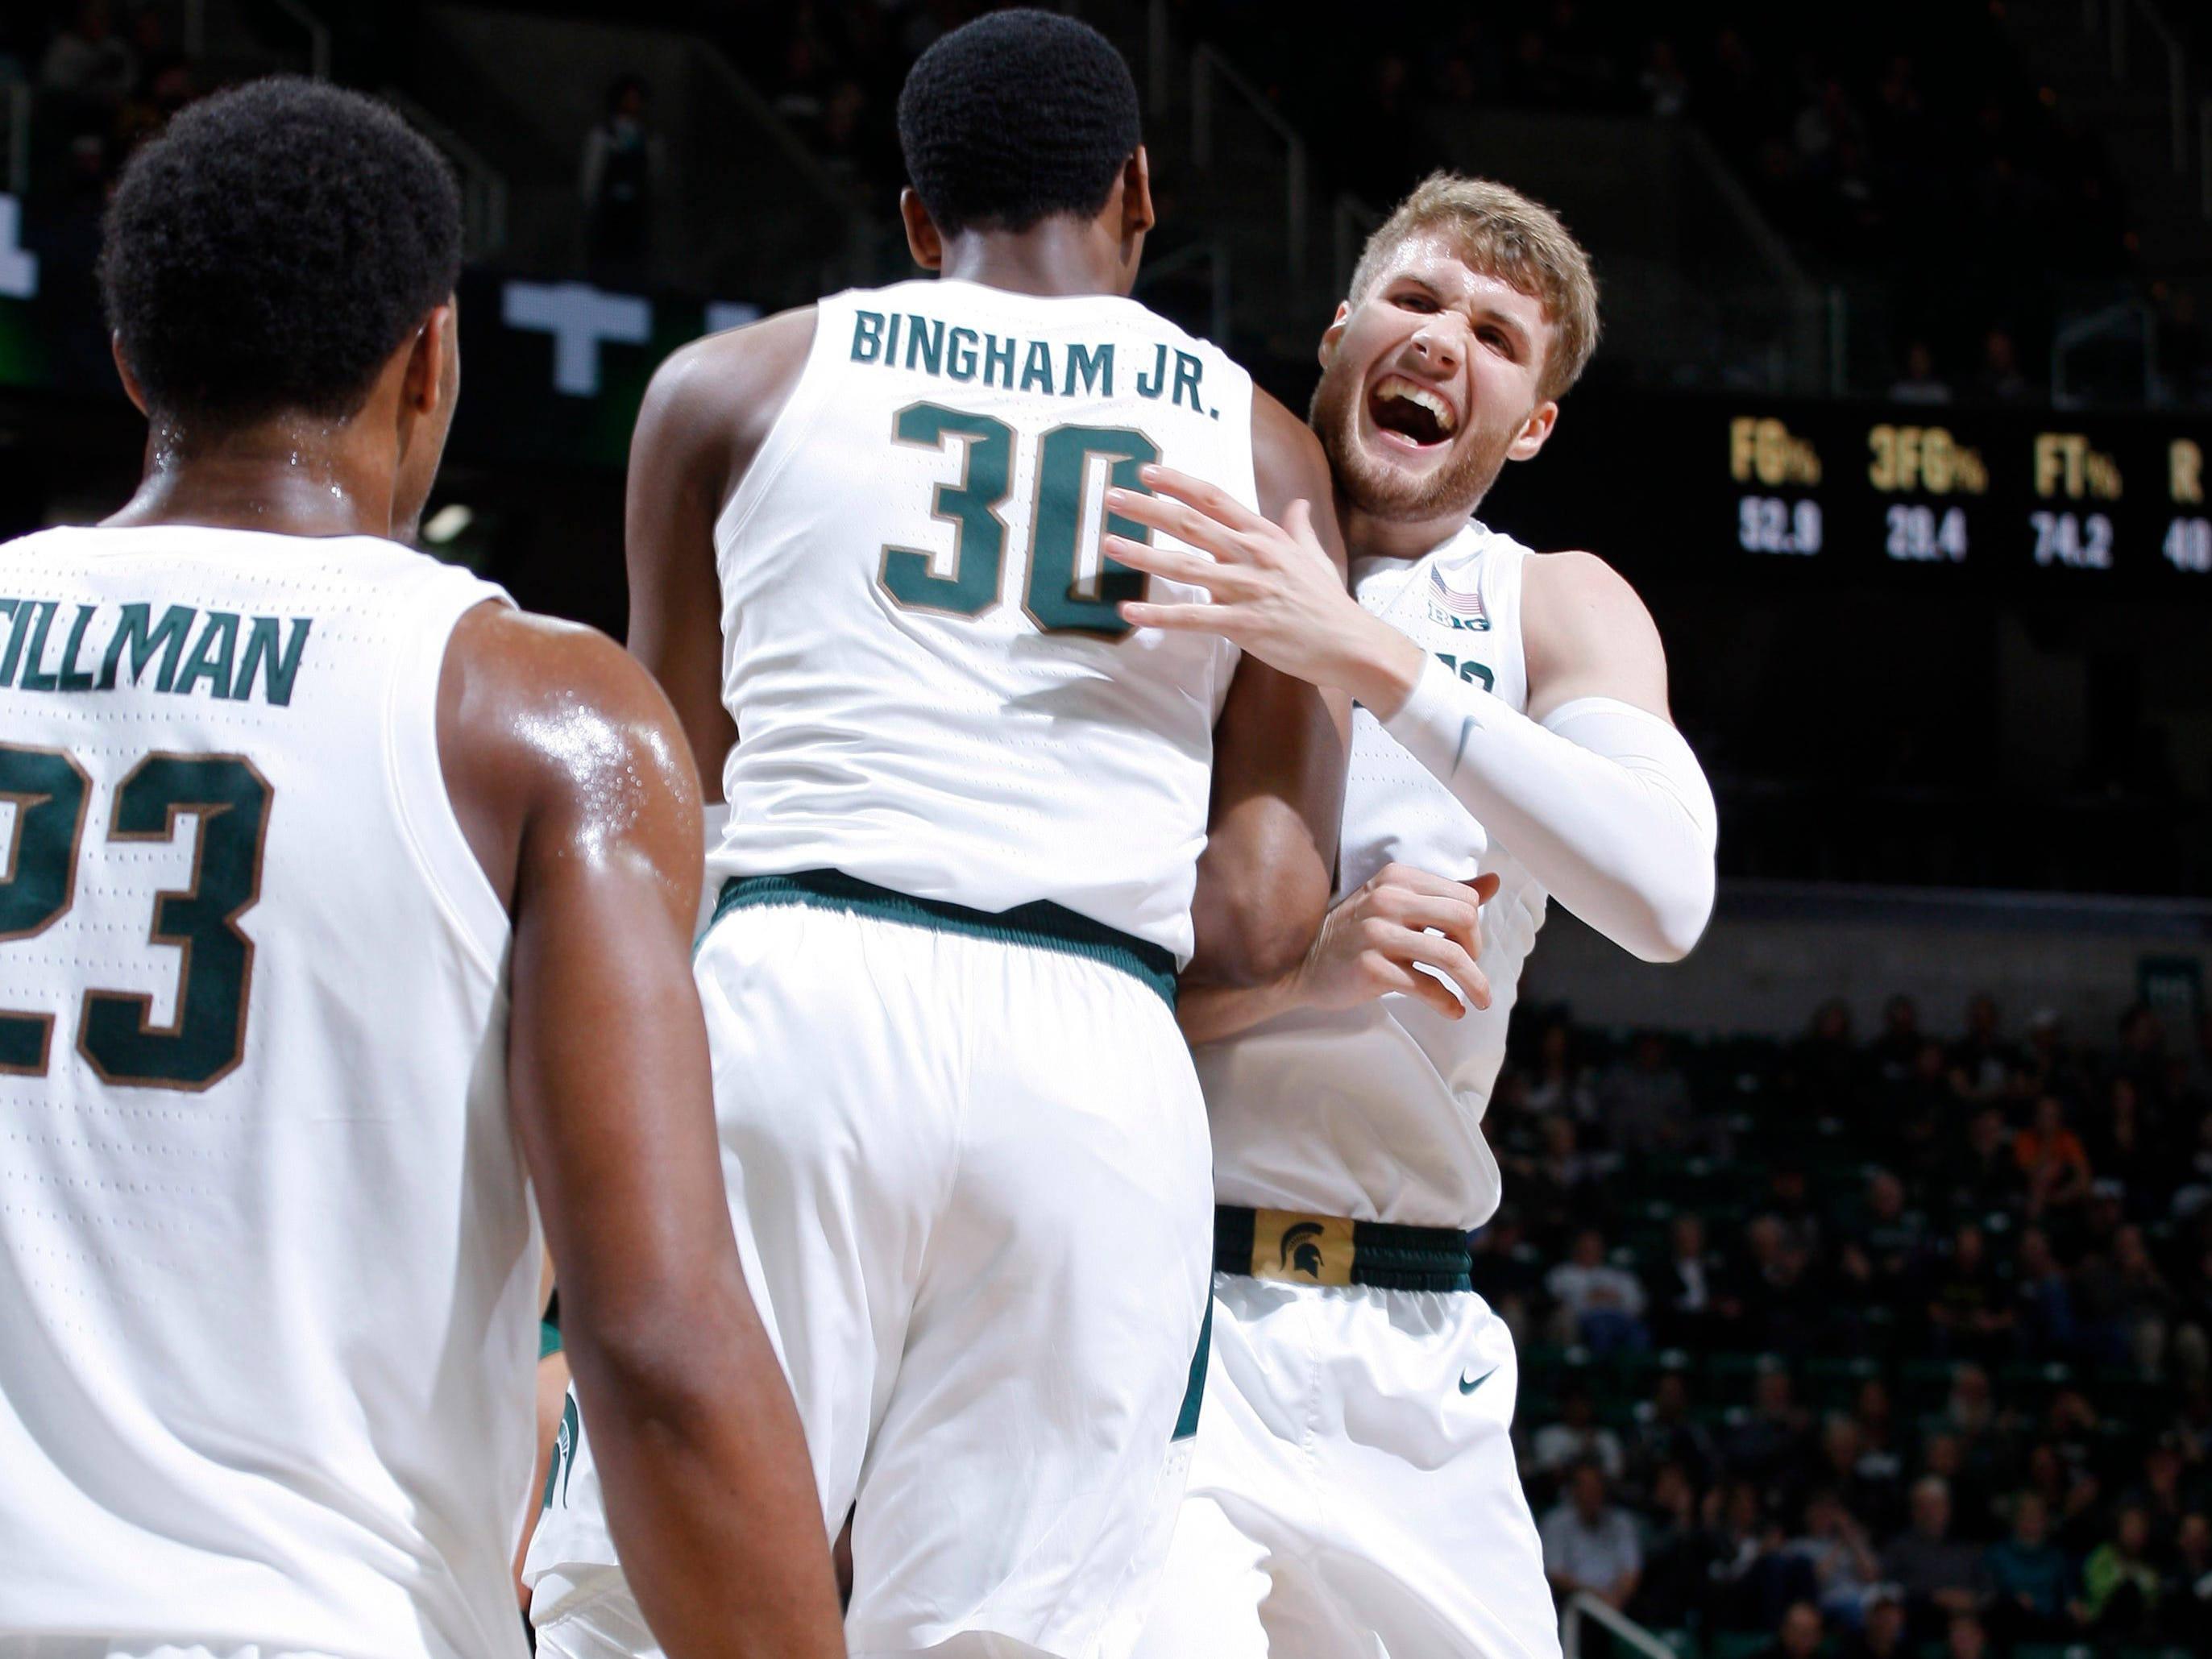 Michigan State's Marcus Bingham Jr. (30) and Kyle Ahrens, right, celebrate against Northern Michigan, Tuesday, Oct. 30, 2018, in East Lansing, Mich.